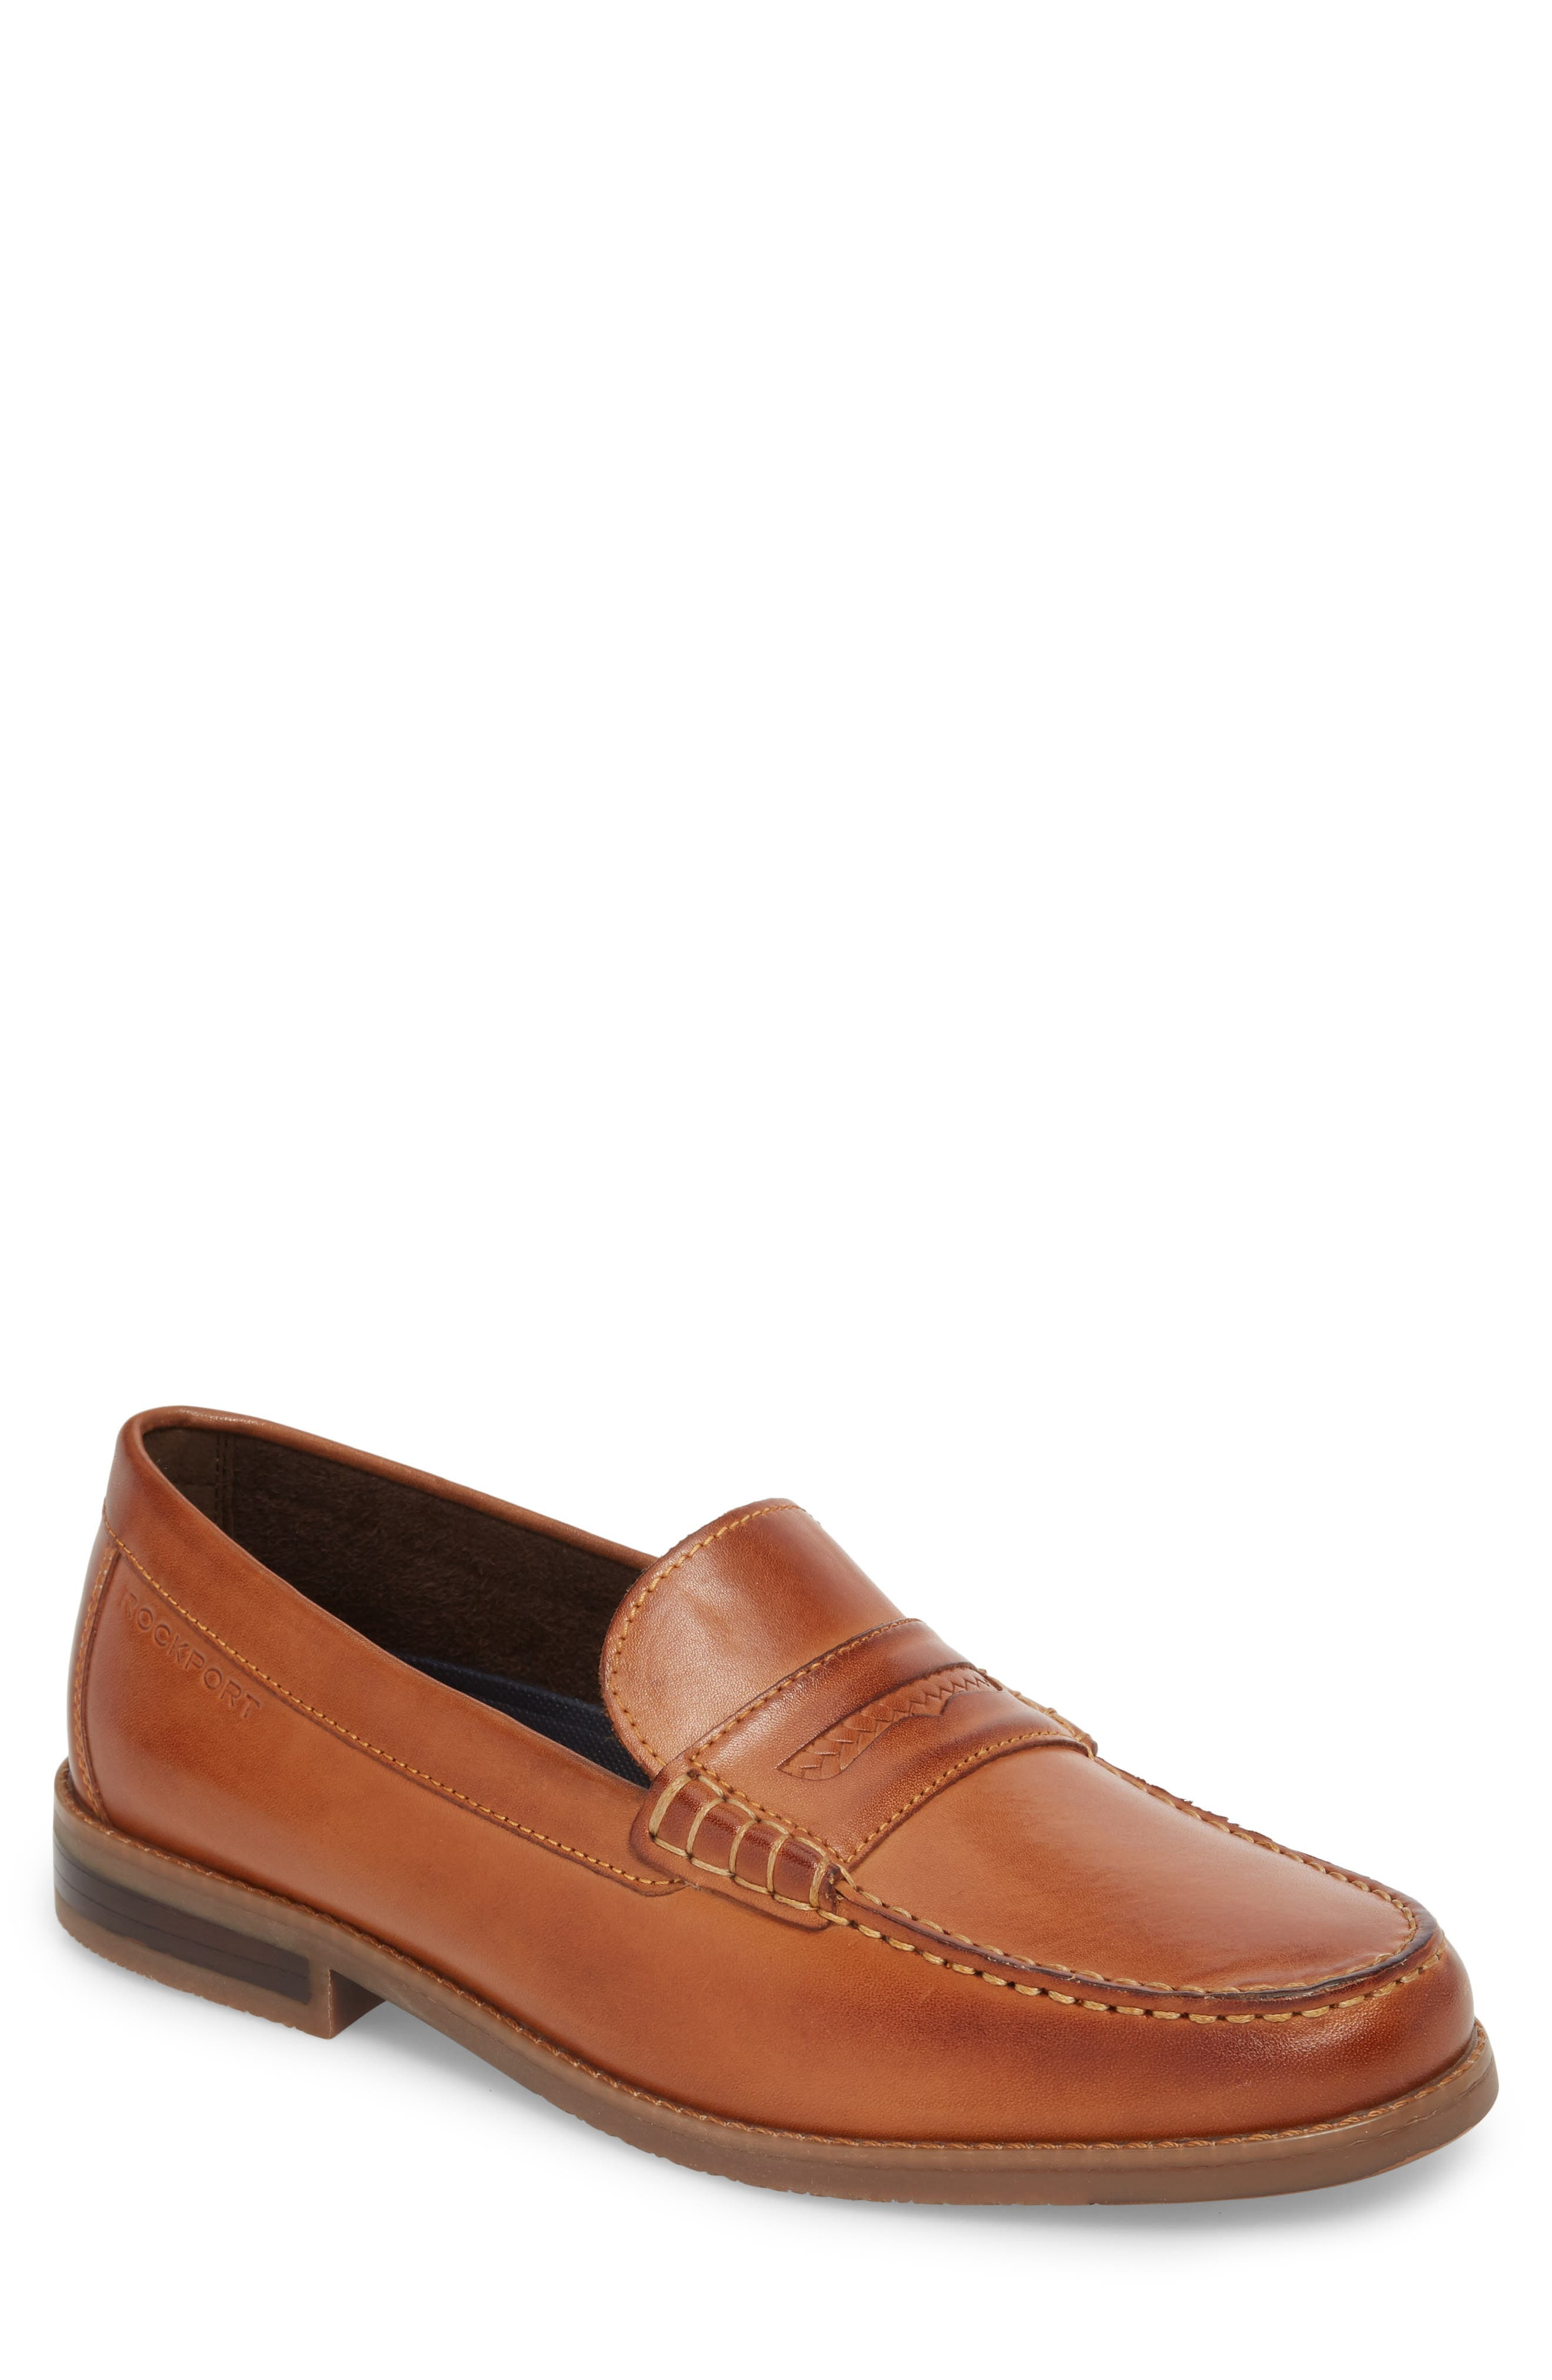 Cayleb Moc Toe Penny Loafer,                             Main thumbnail 1, color,                             231